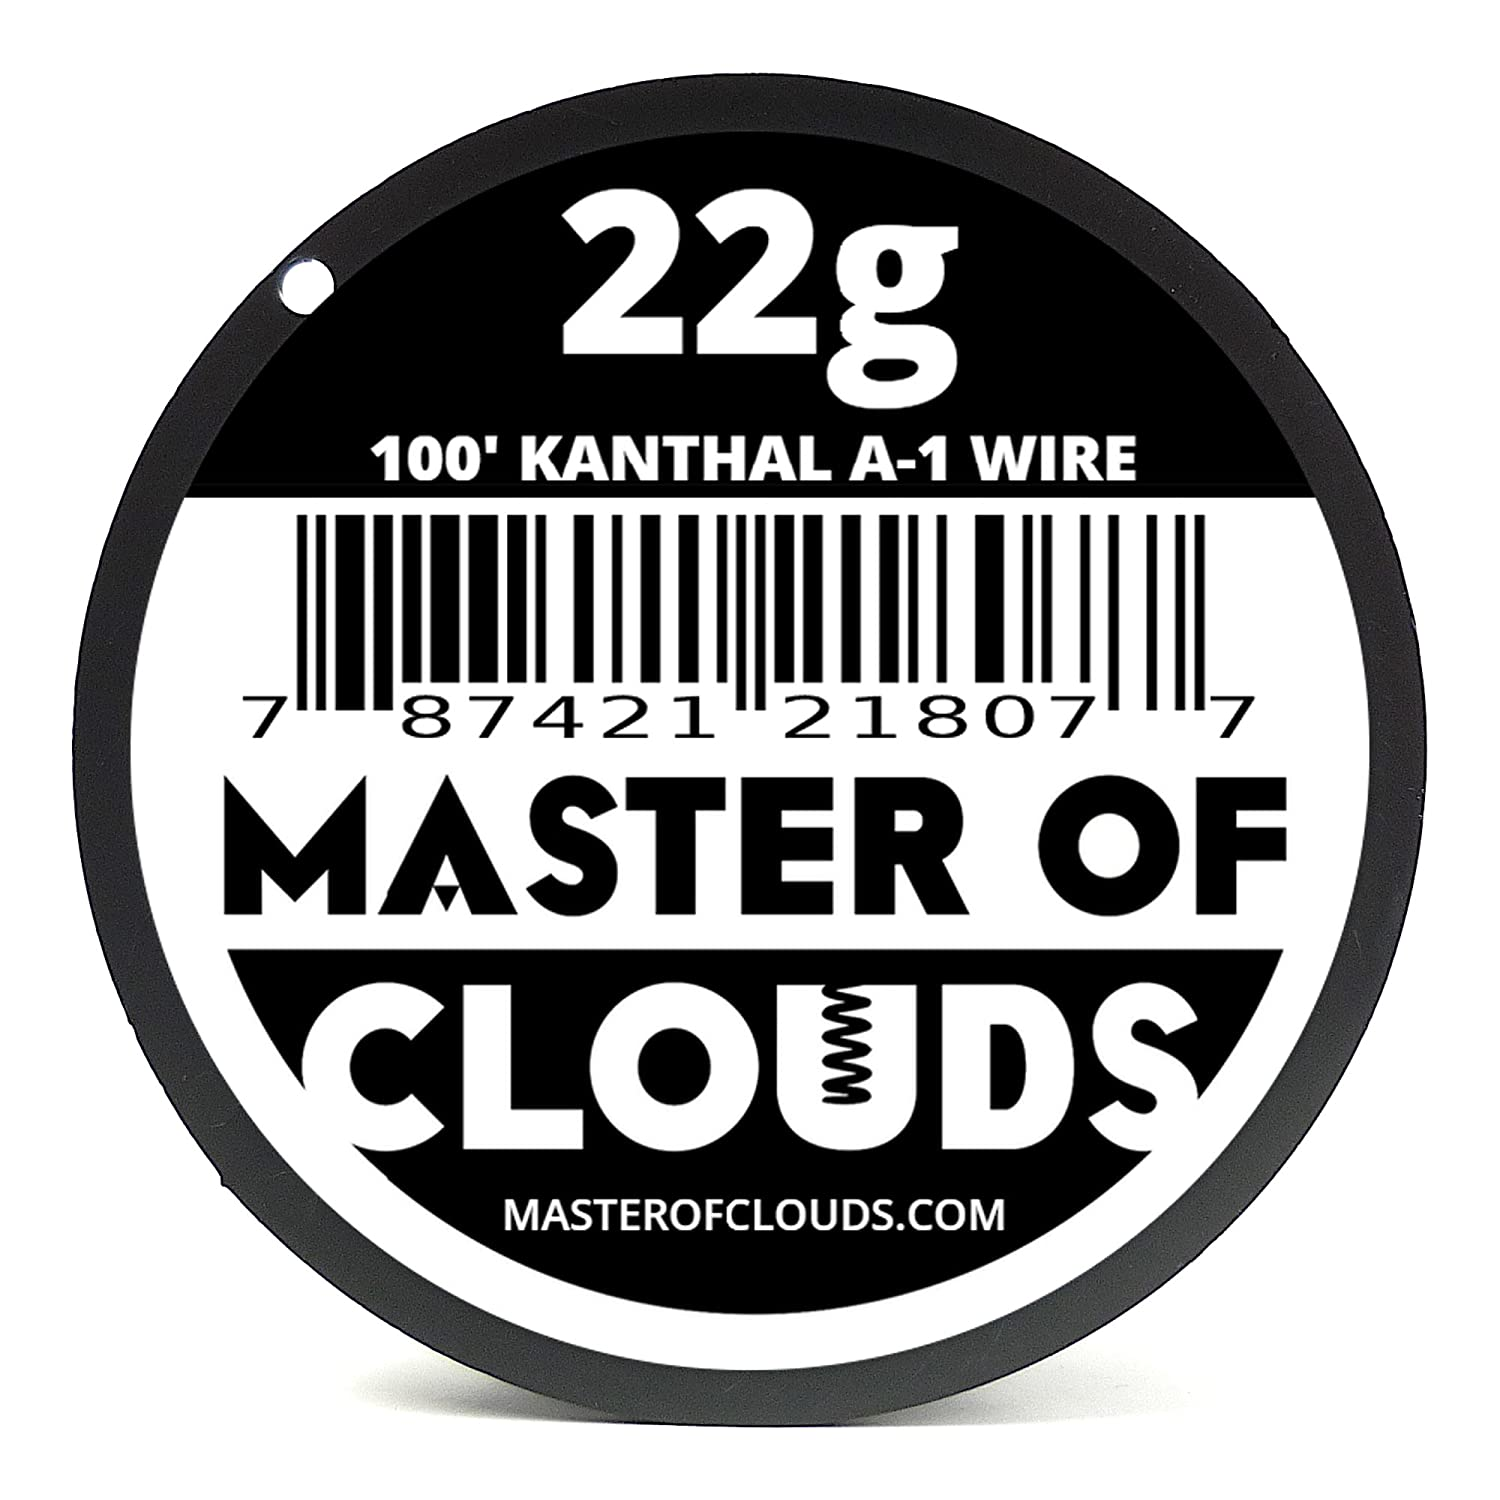 100 ft 22 gauge kanthal a1 resistance wire from master of clouds 100 ft 22 gauge kanthal a1 resistance wire from master of clouds amazon keyboard keysfo Images